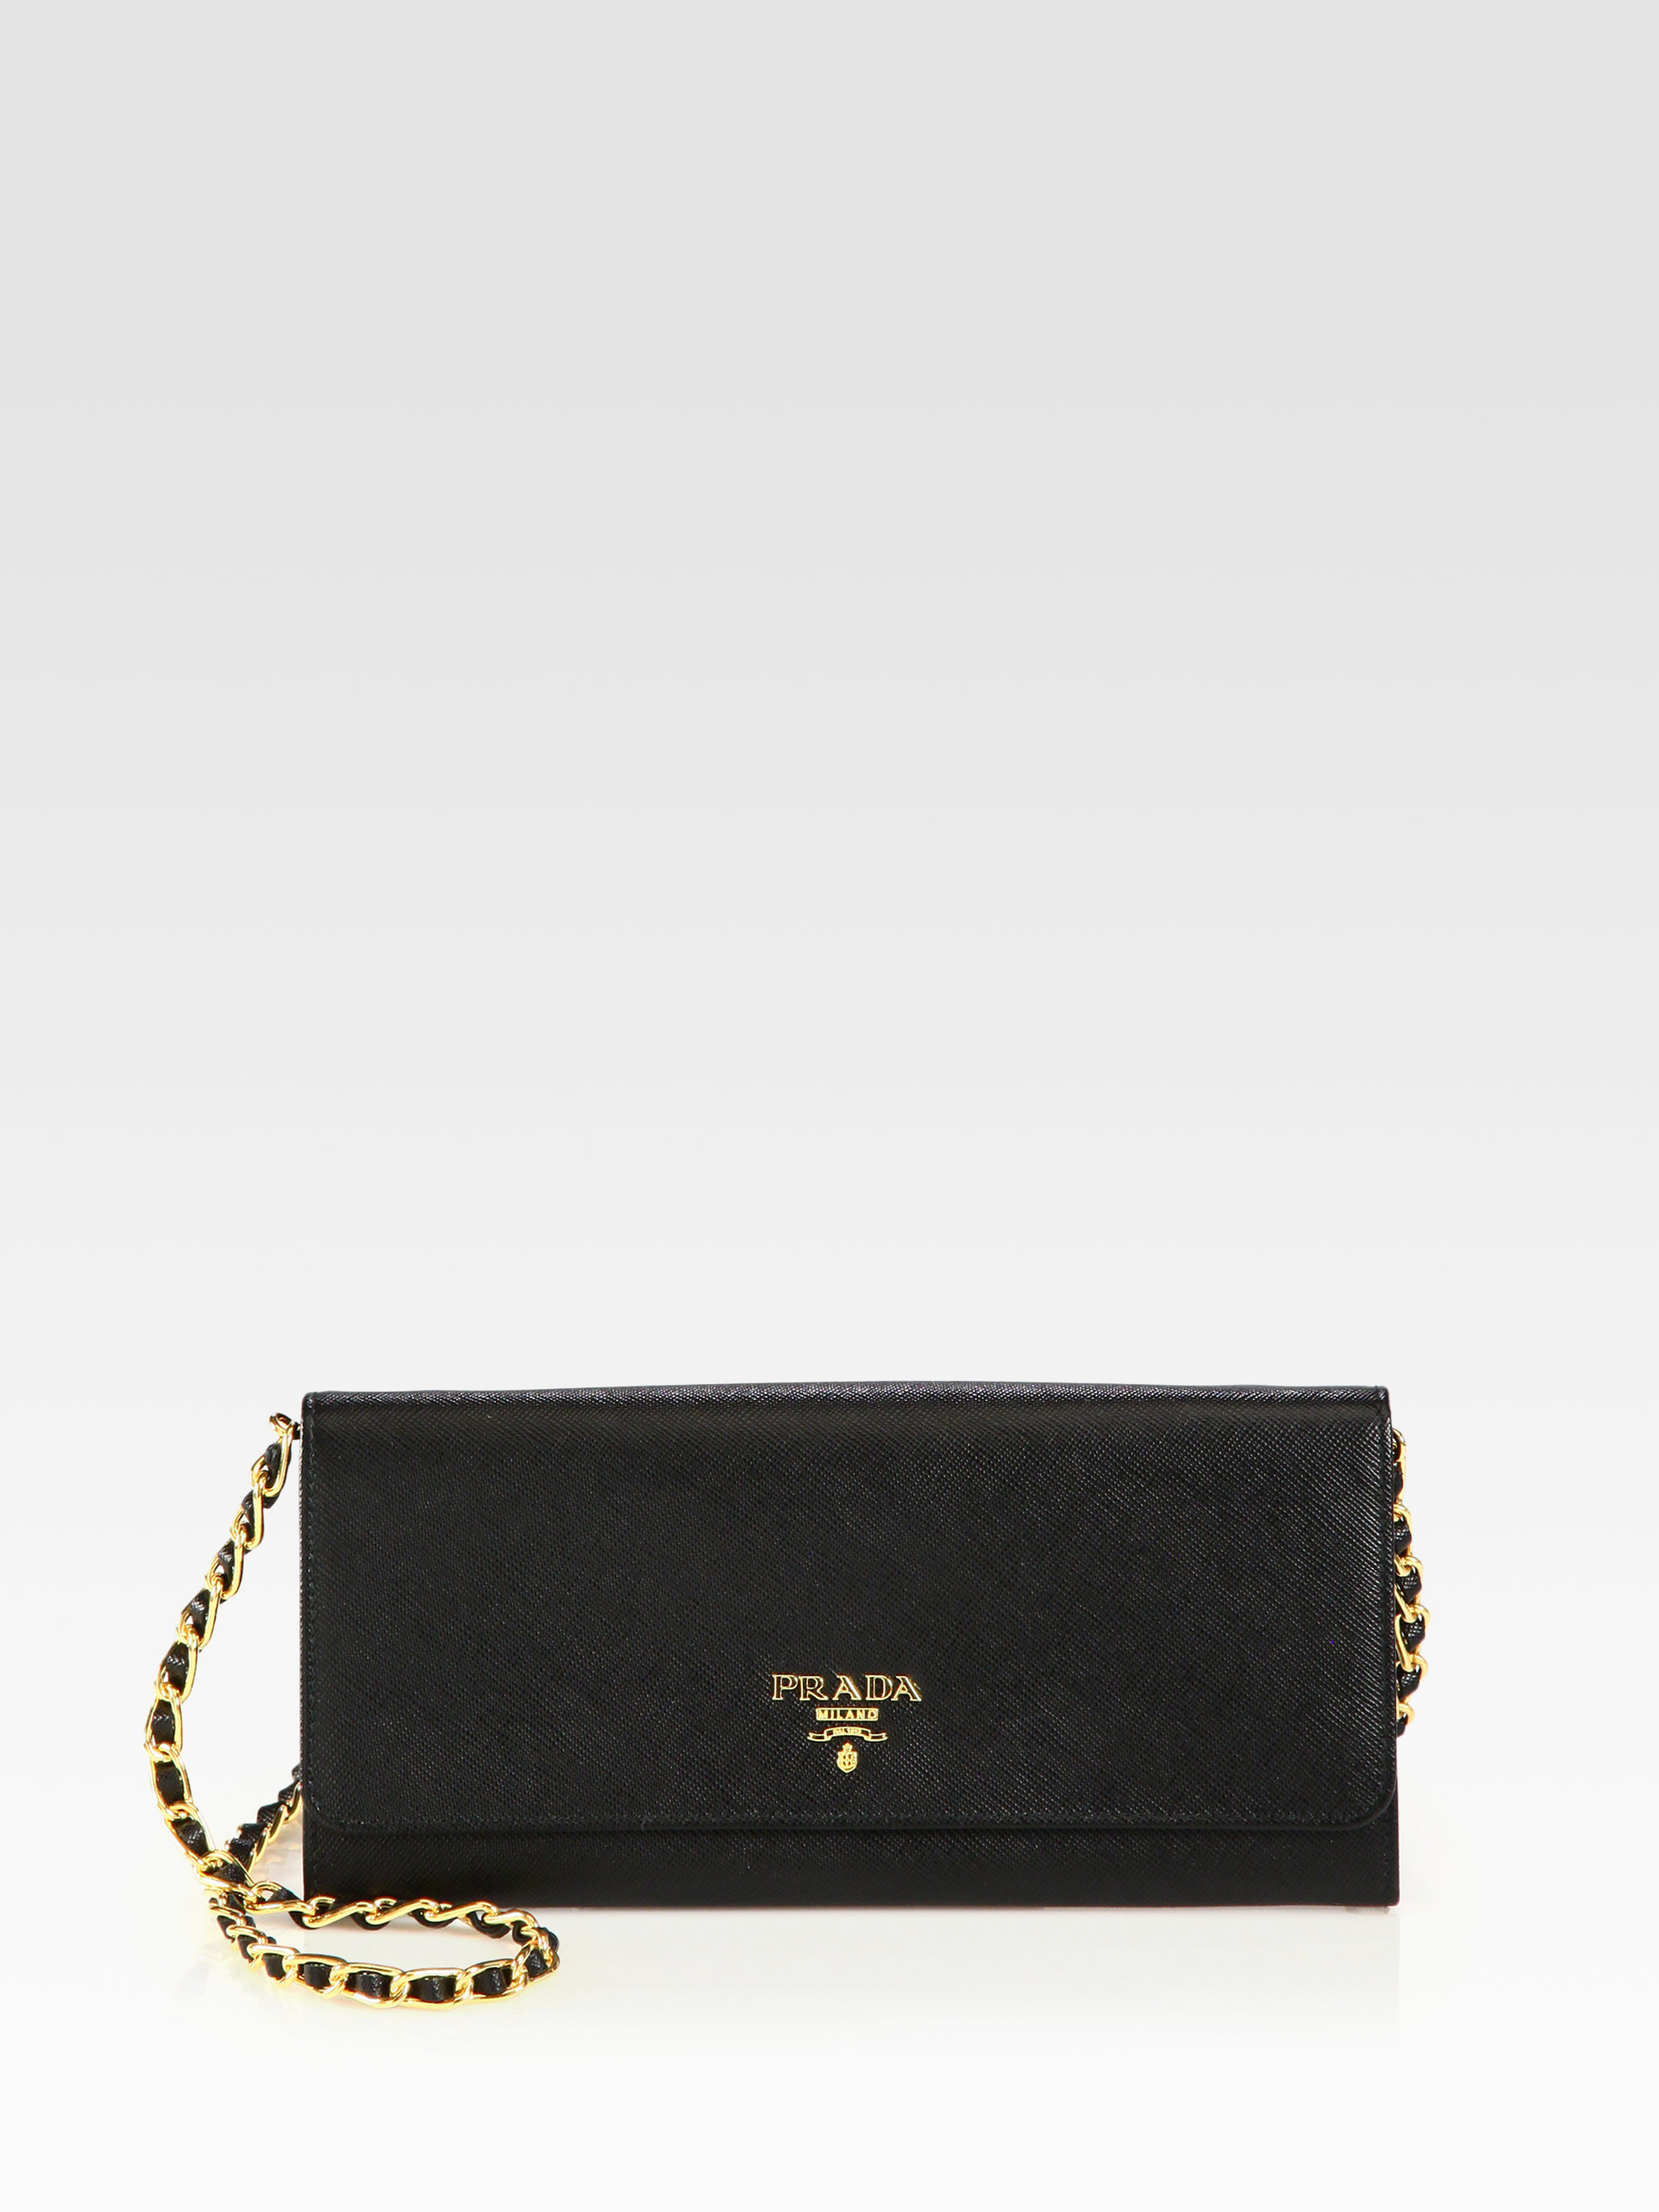 red prada bags - prada clutch black